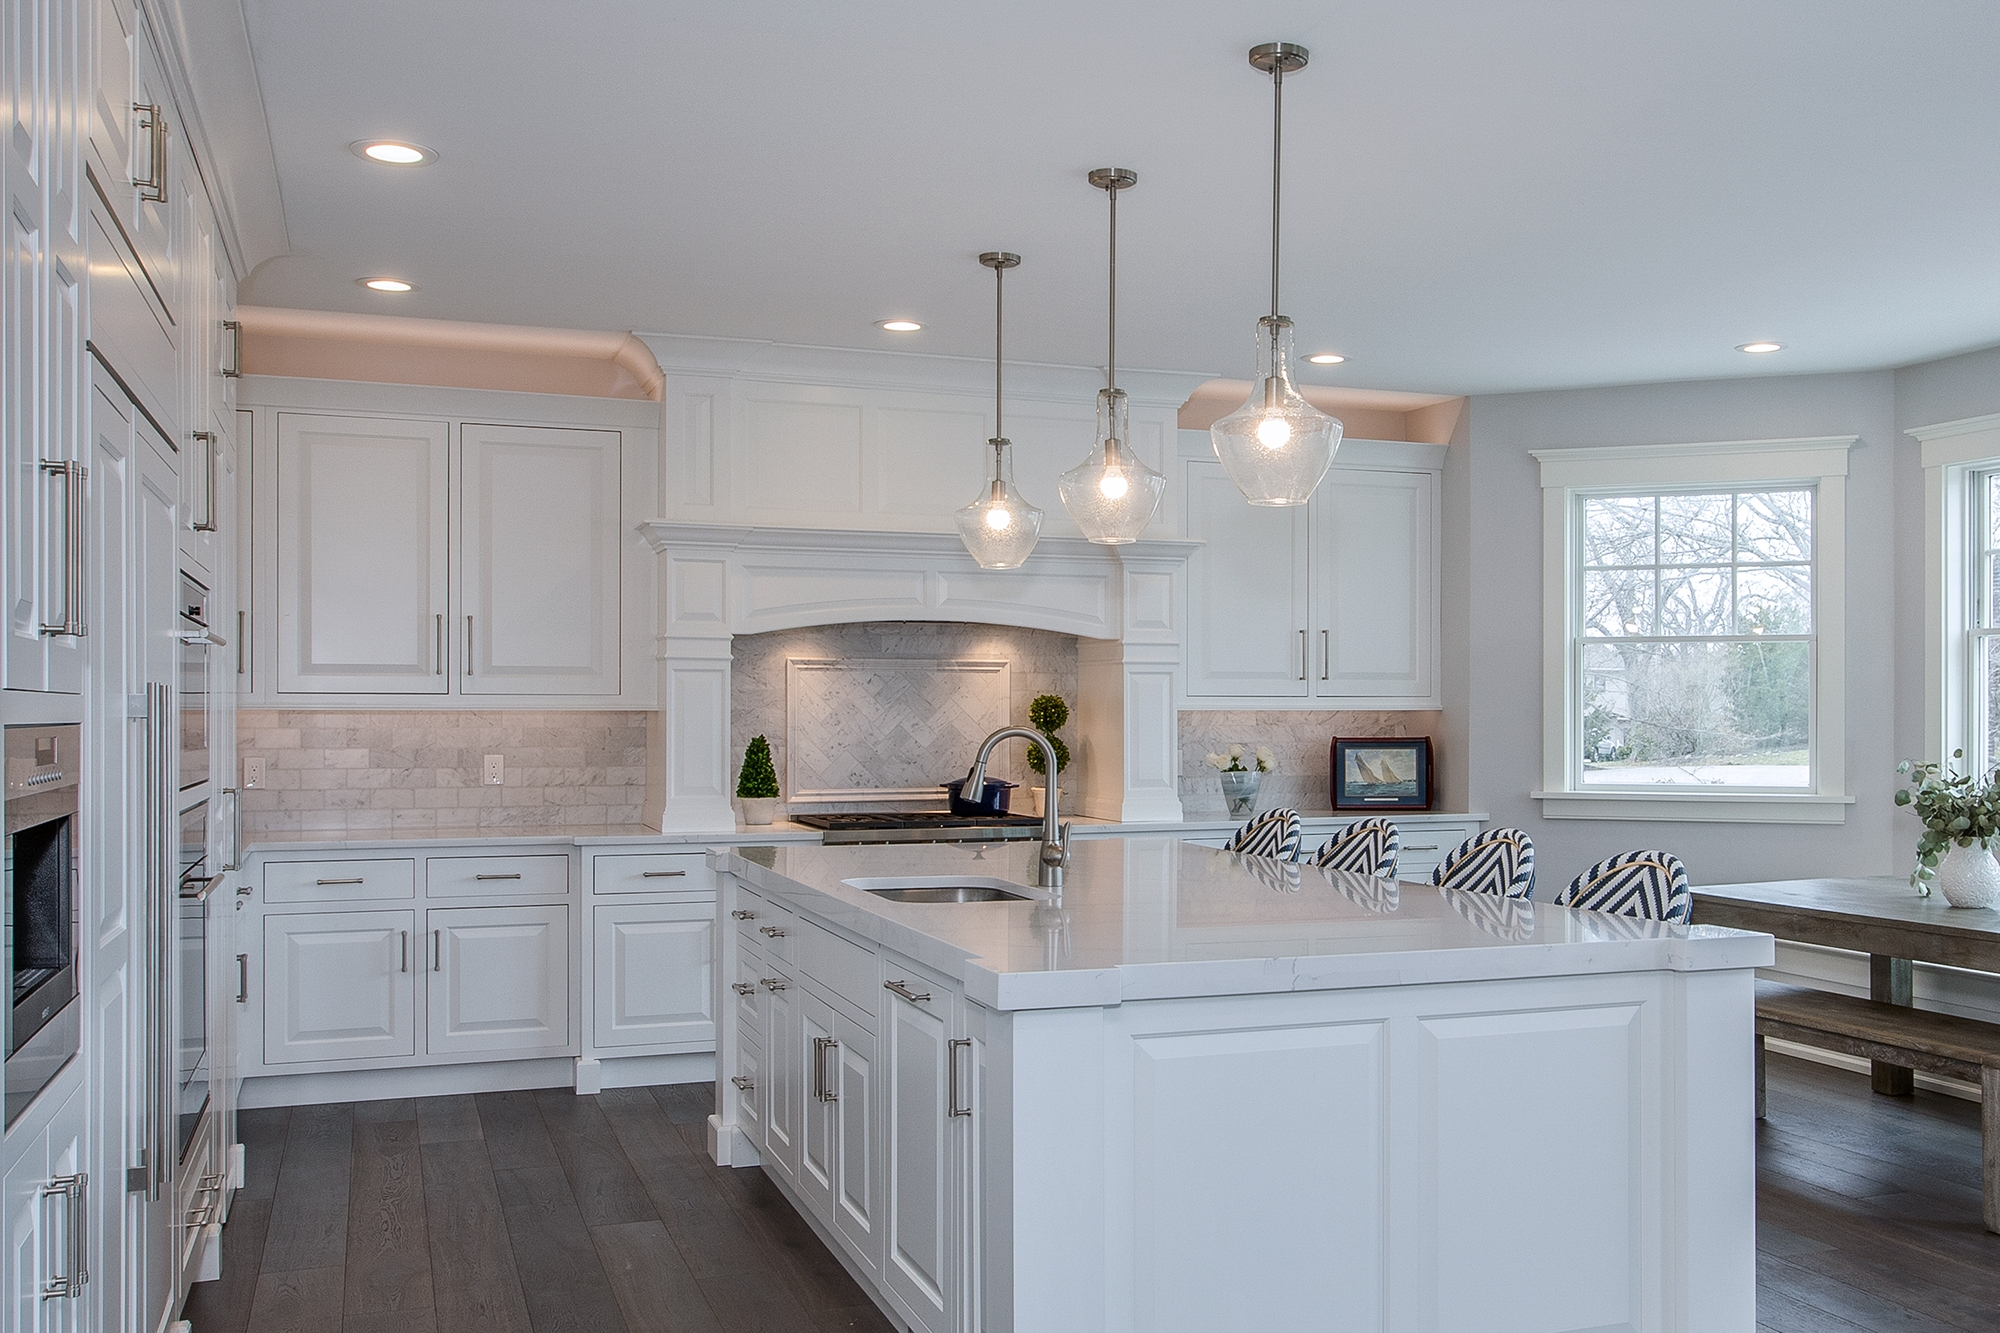 White Kitchen Cabinets With Walk In Pantry Showplace Cabinetry